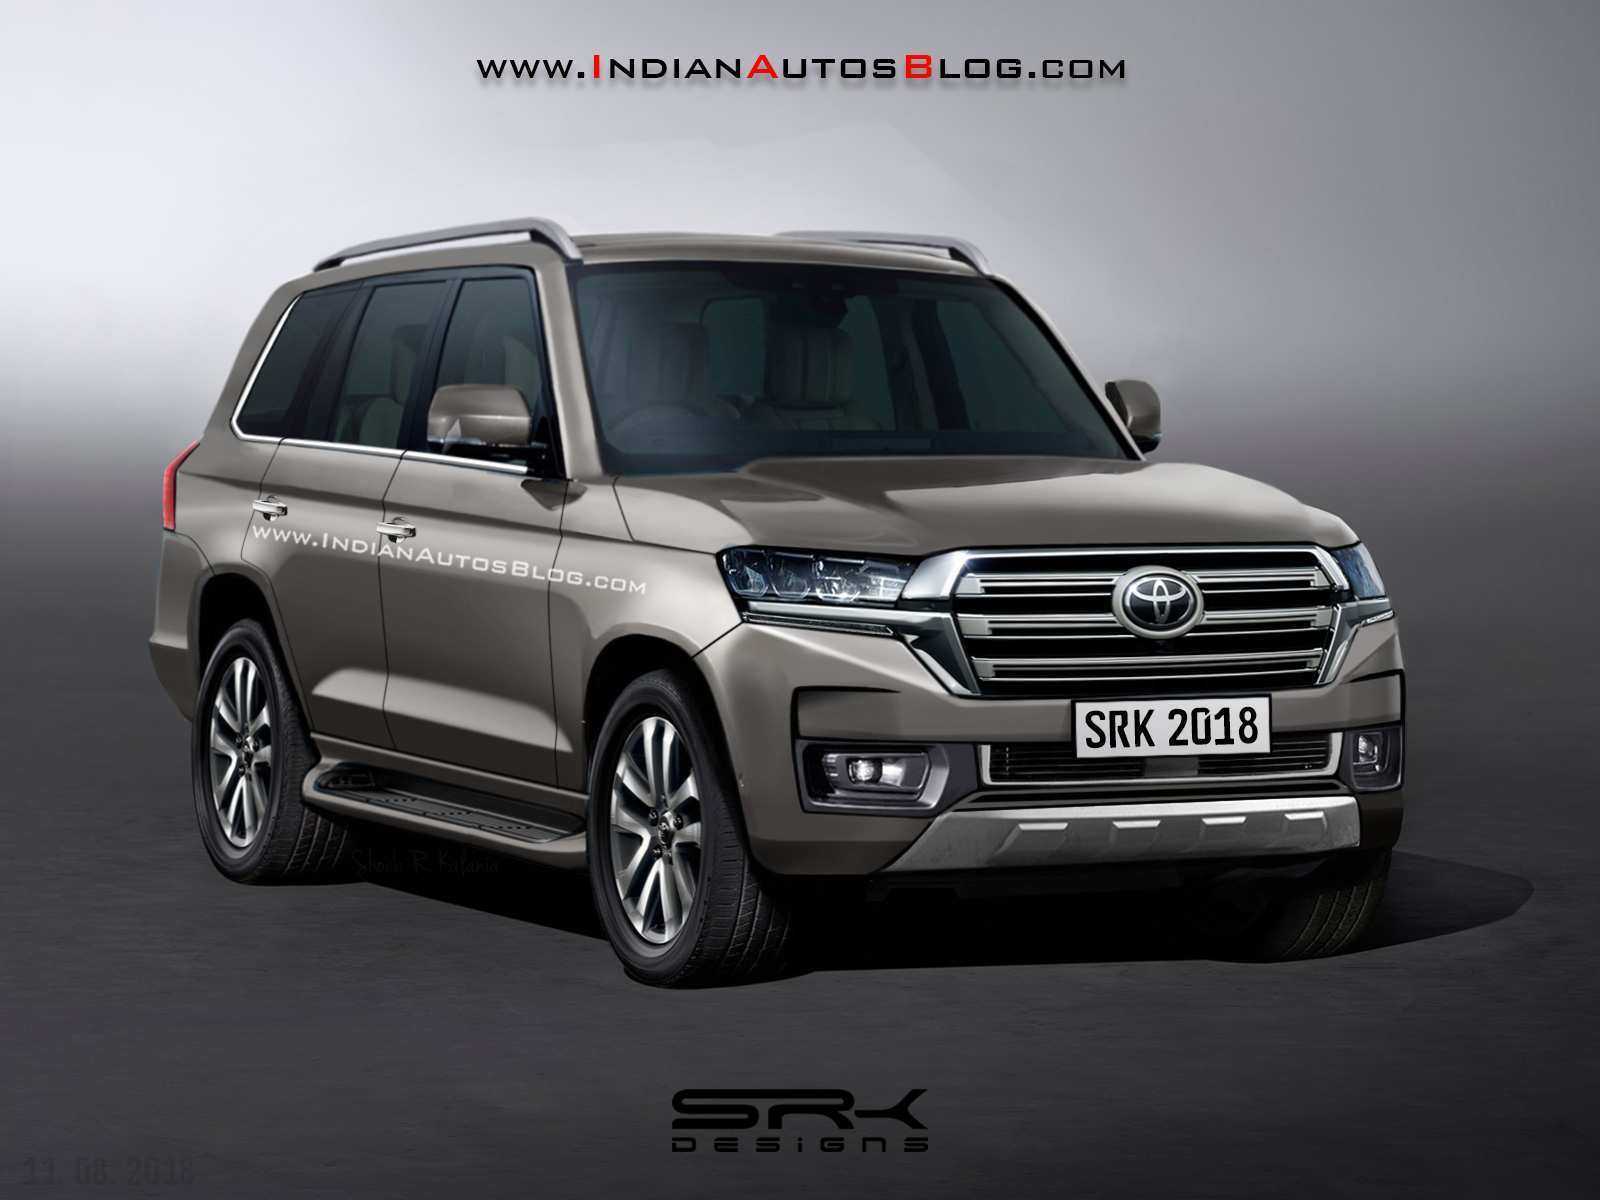 79 All New Toyota Land Cruiser 2020 Model Pictures